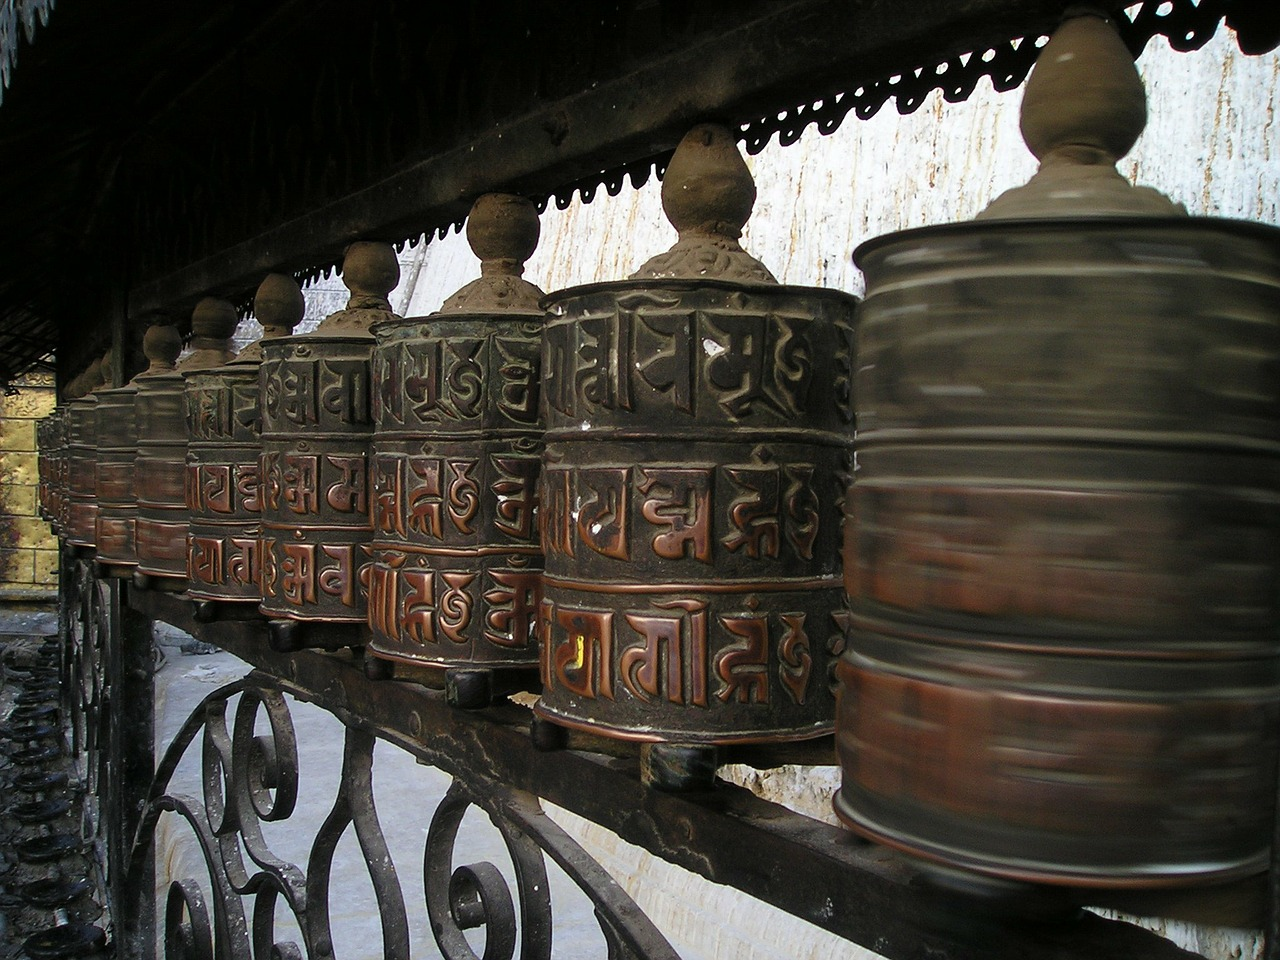 prayer wheels,buddhism,nepal,prayers,pray,faith,believe,religion,tibet,asia,spiritual,turn,free pictures, free photos, free images, royalty free, free illustrations, public domain